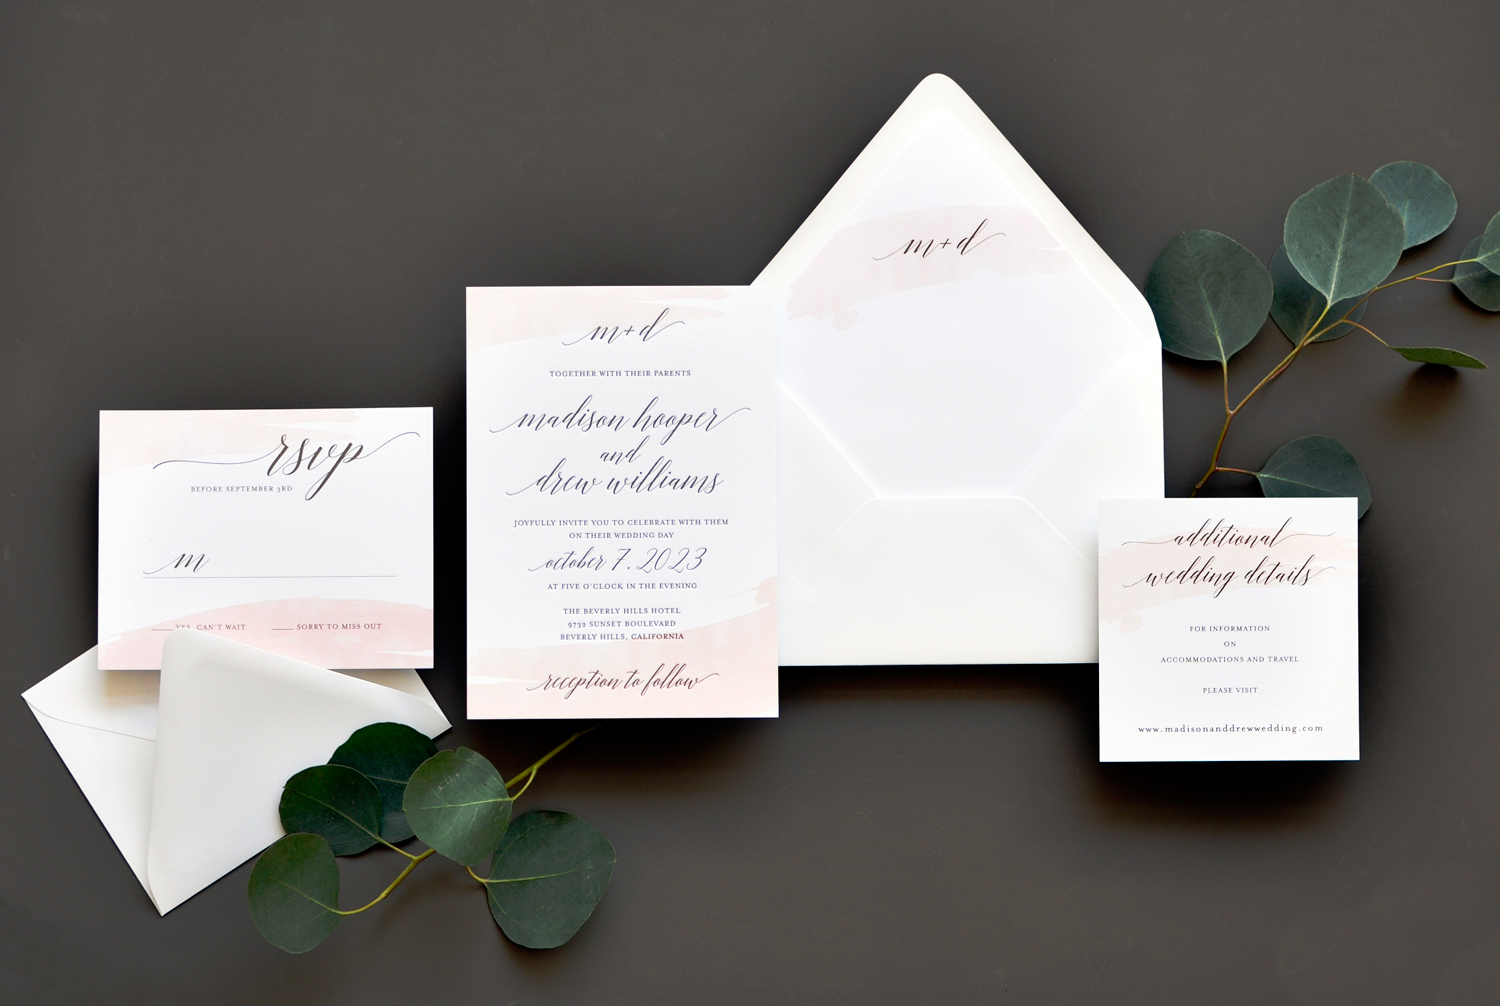 Watercolor Swash Wedding Invitation